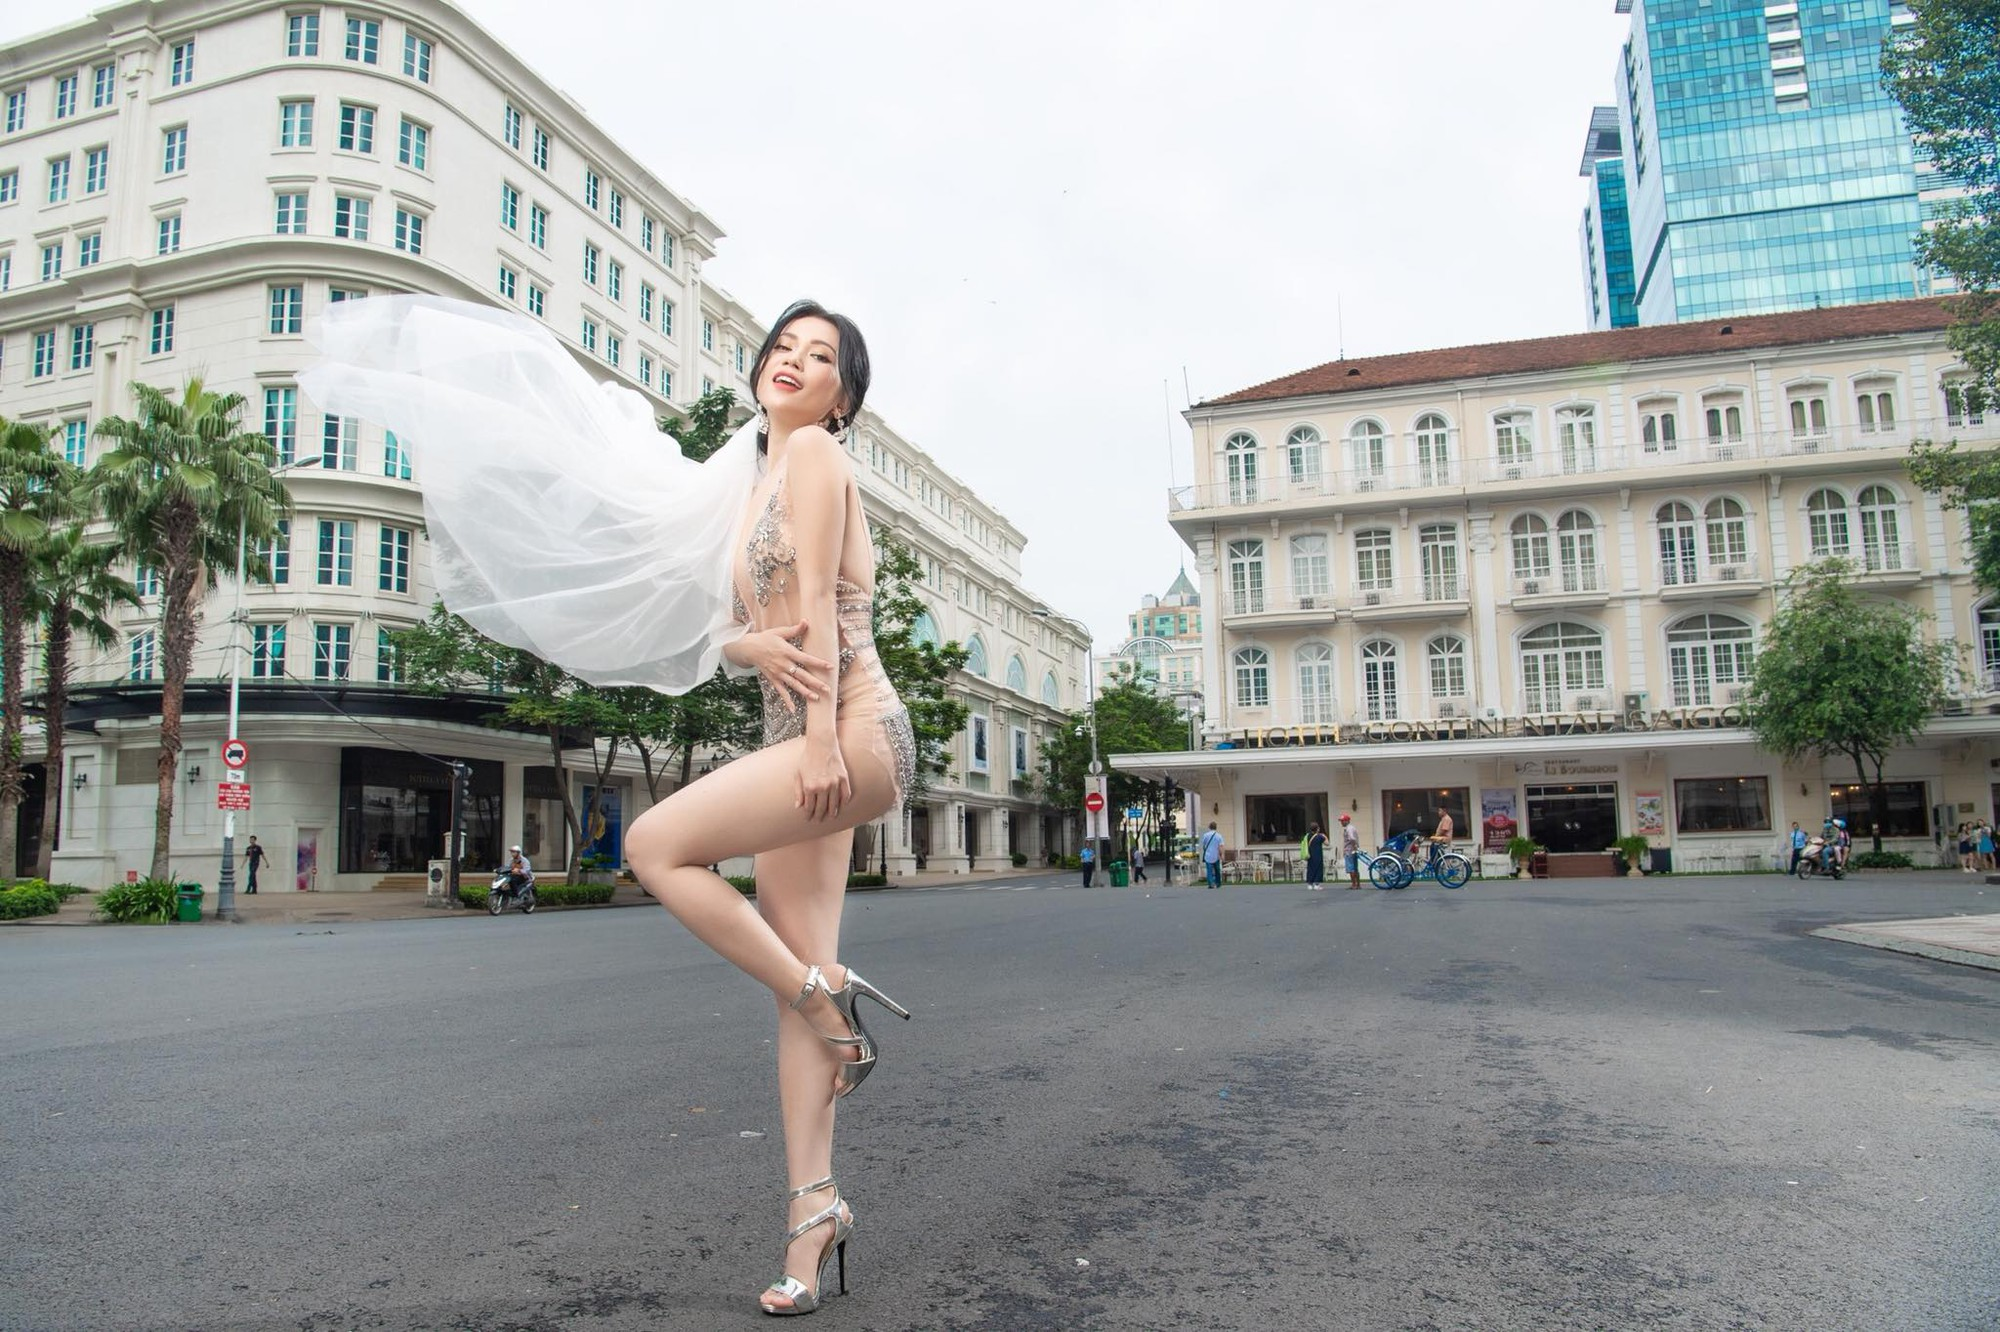 VOH-Si-Thanh-tung-anh-cuoi-sexy-phan-cam-6